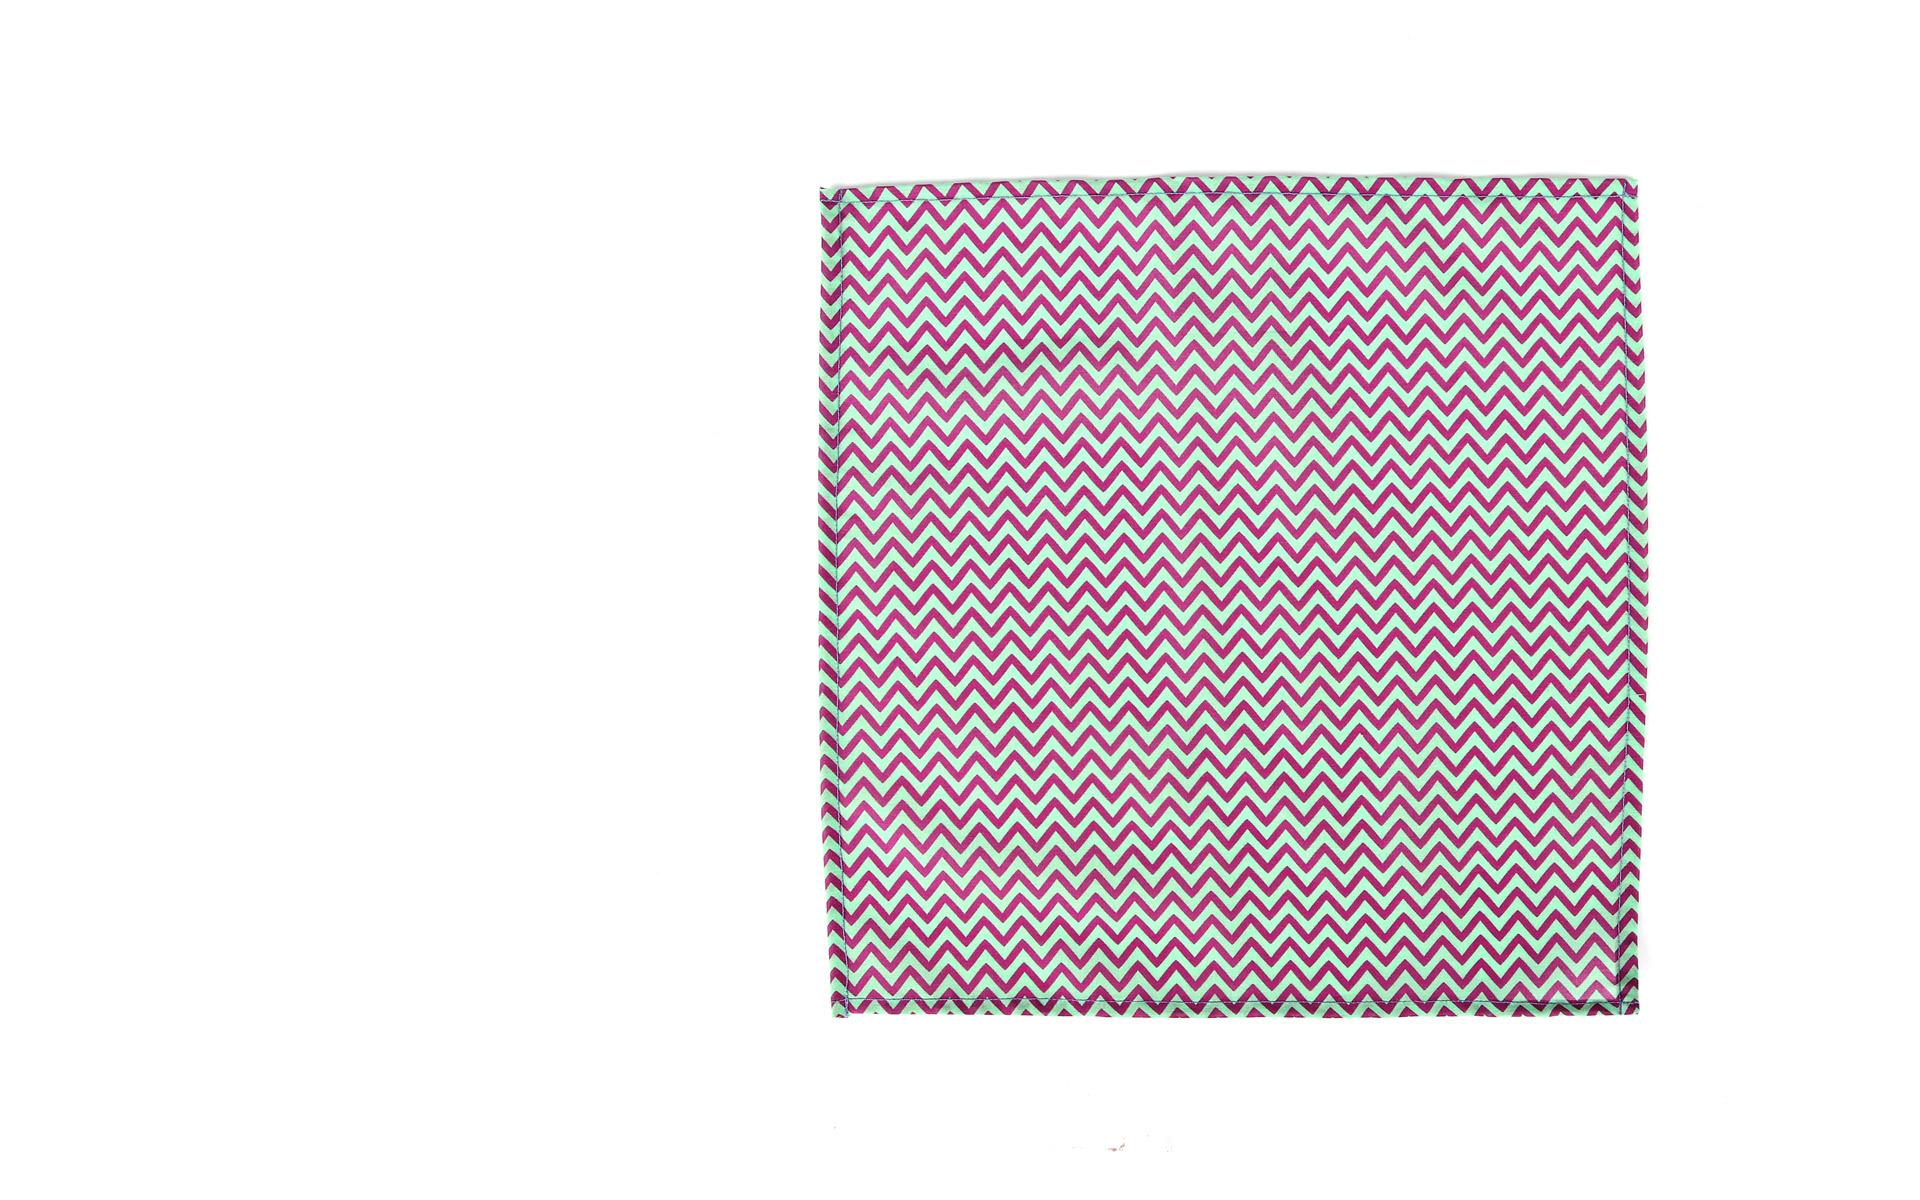 Pink & Green Chevron Patterned Pocket Square